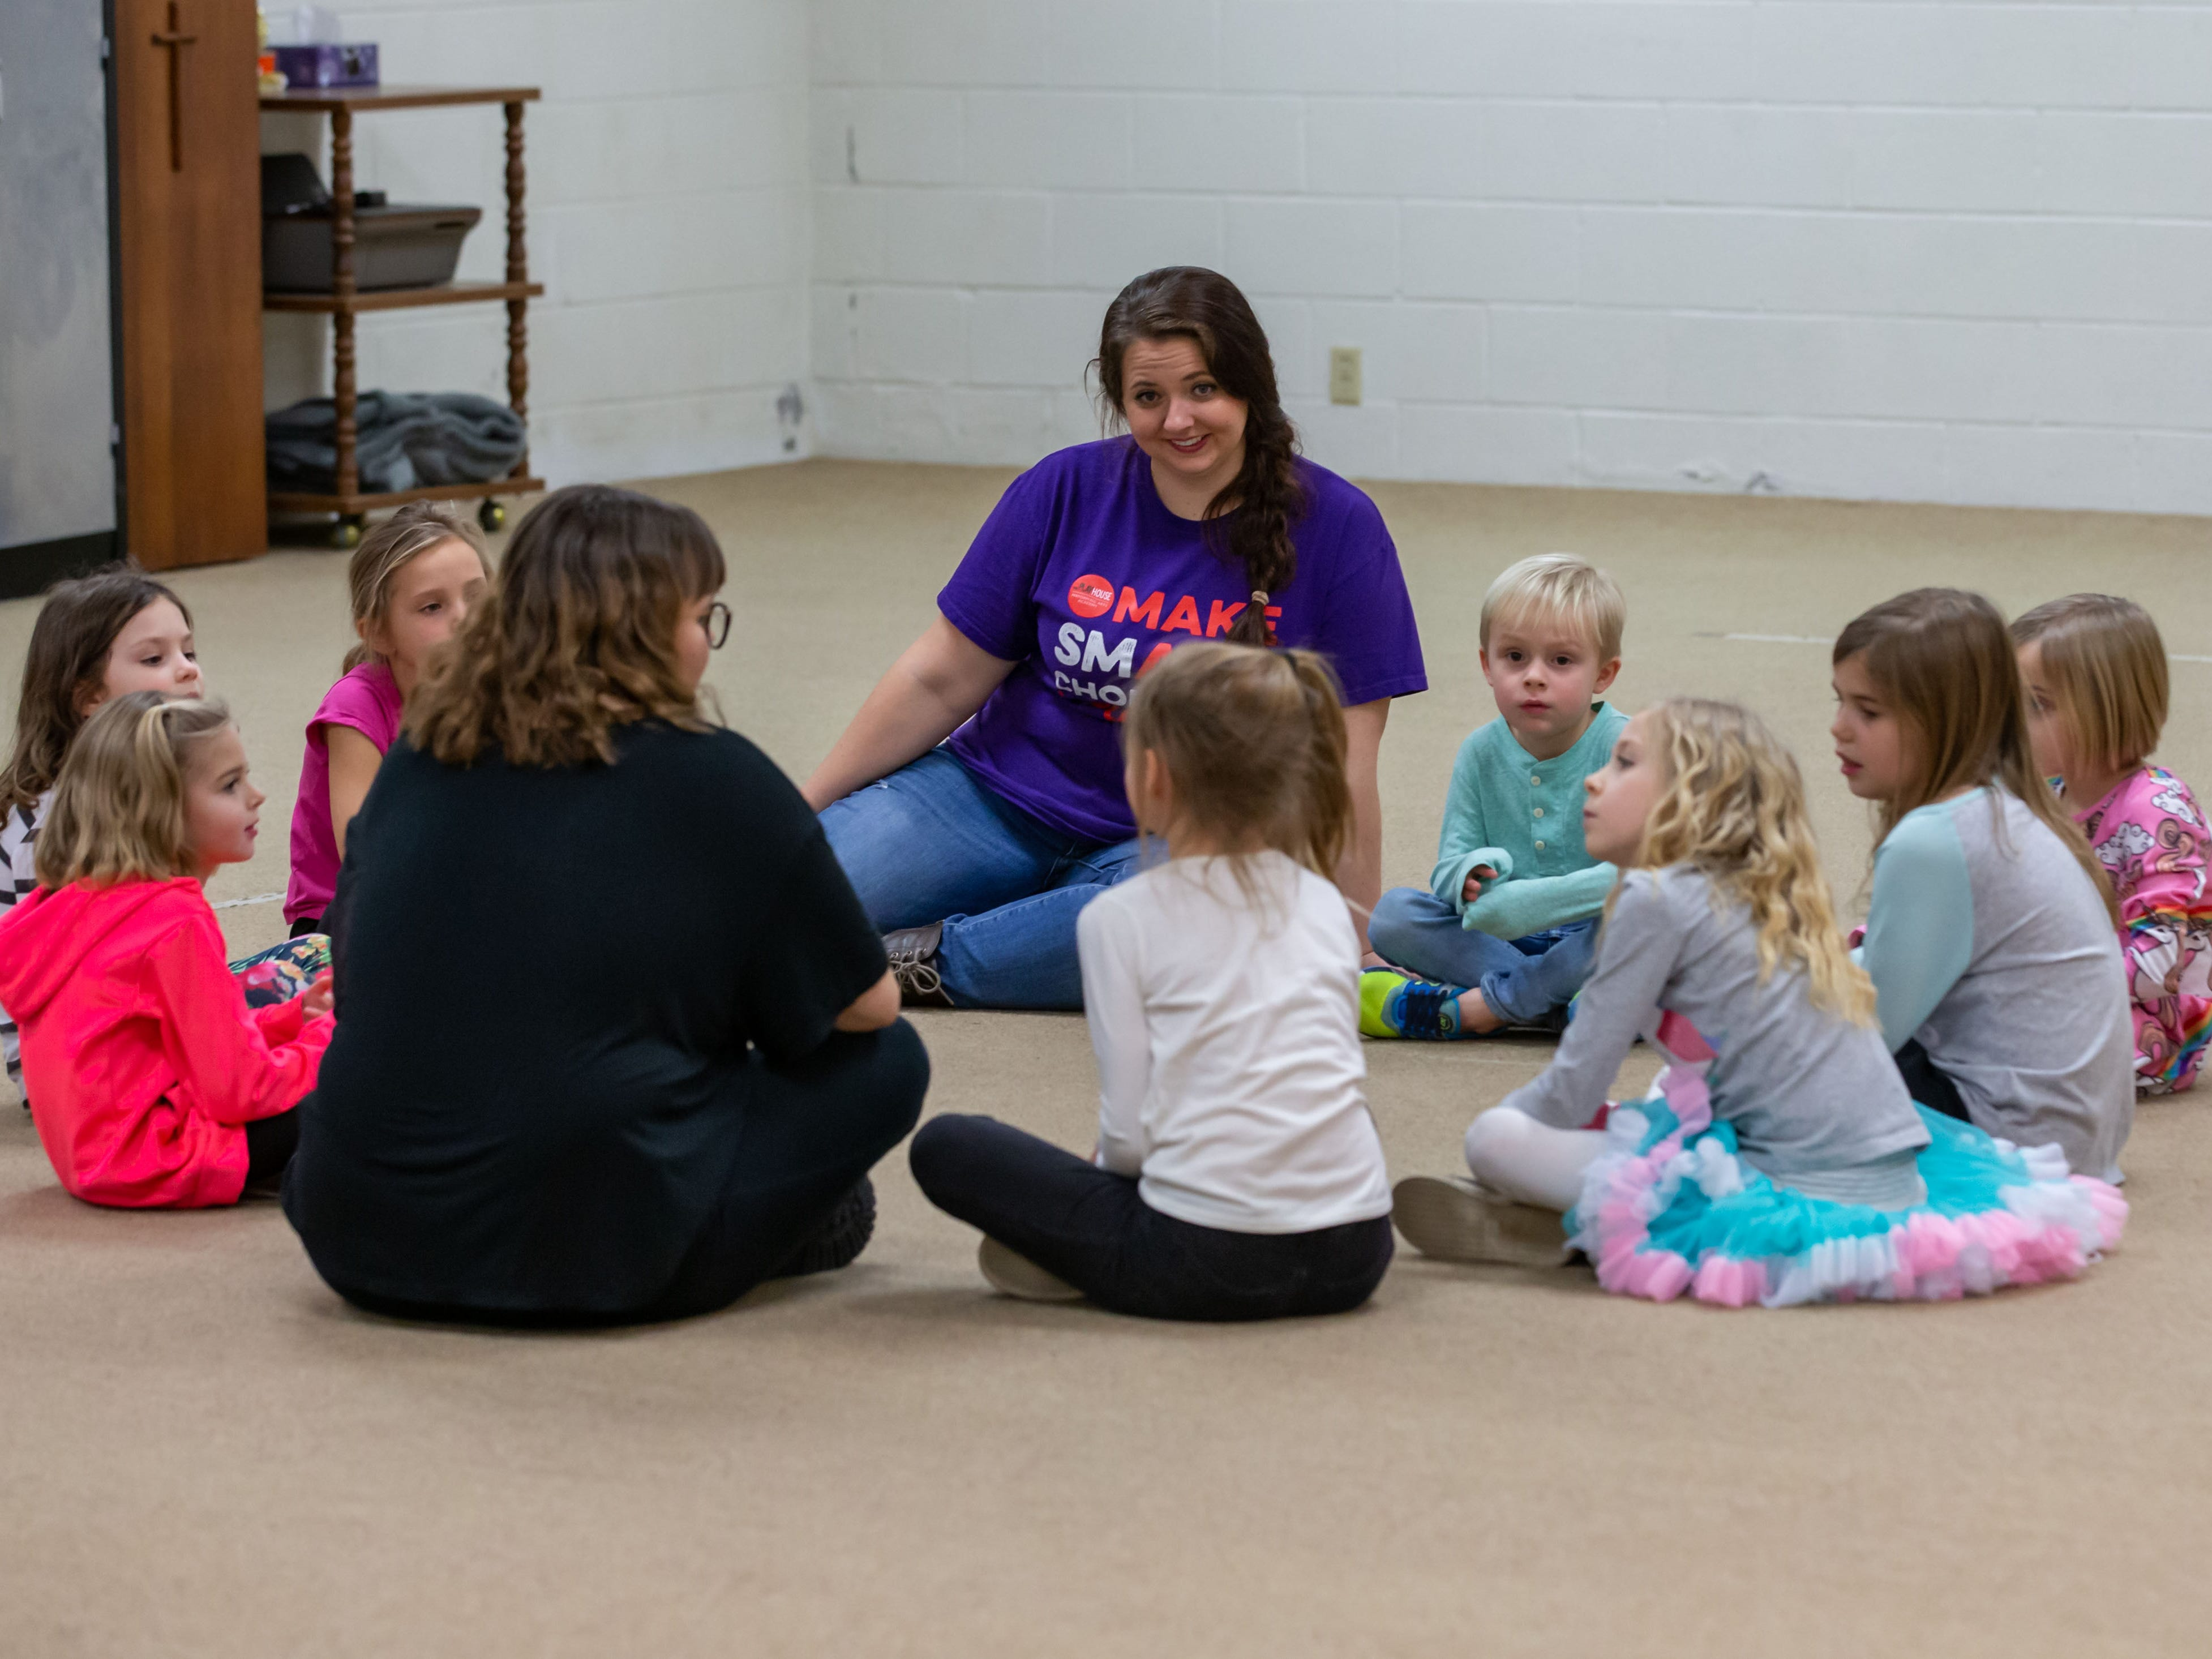 Lake Country Playhouse teaching artists Callyn Klohn (foreground) and Kathryn Mooers work with youngsters during a free, Open House theatre class in Hartland on Monday, Jan. 7, 2019. For more information visit LakeCountryPlayhouseWI.org.